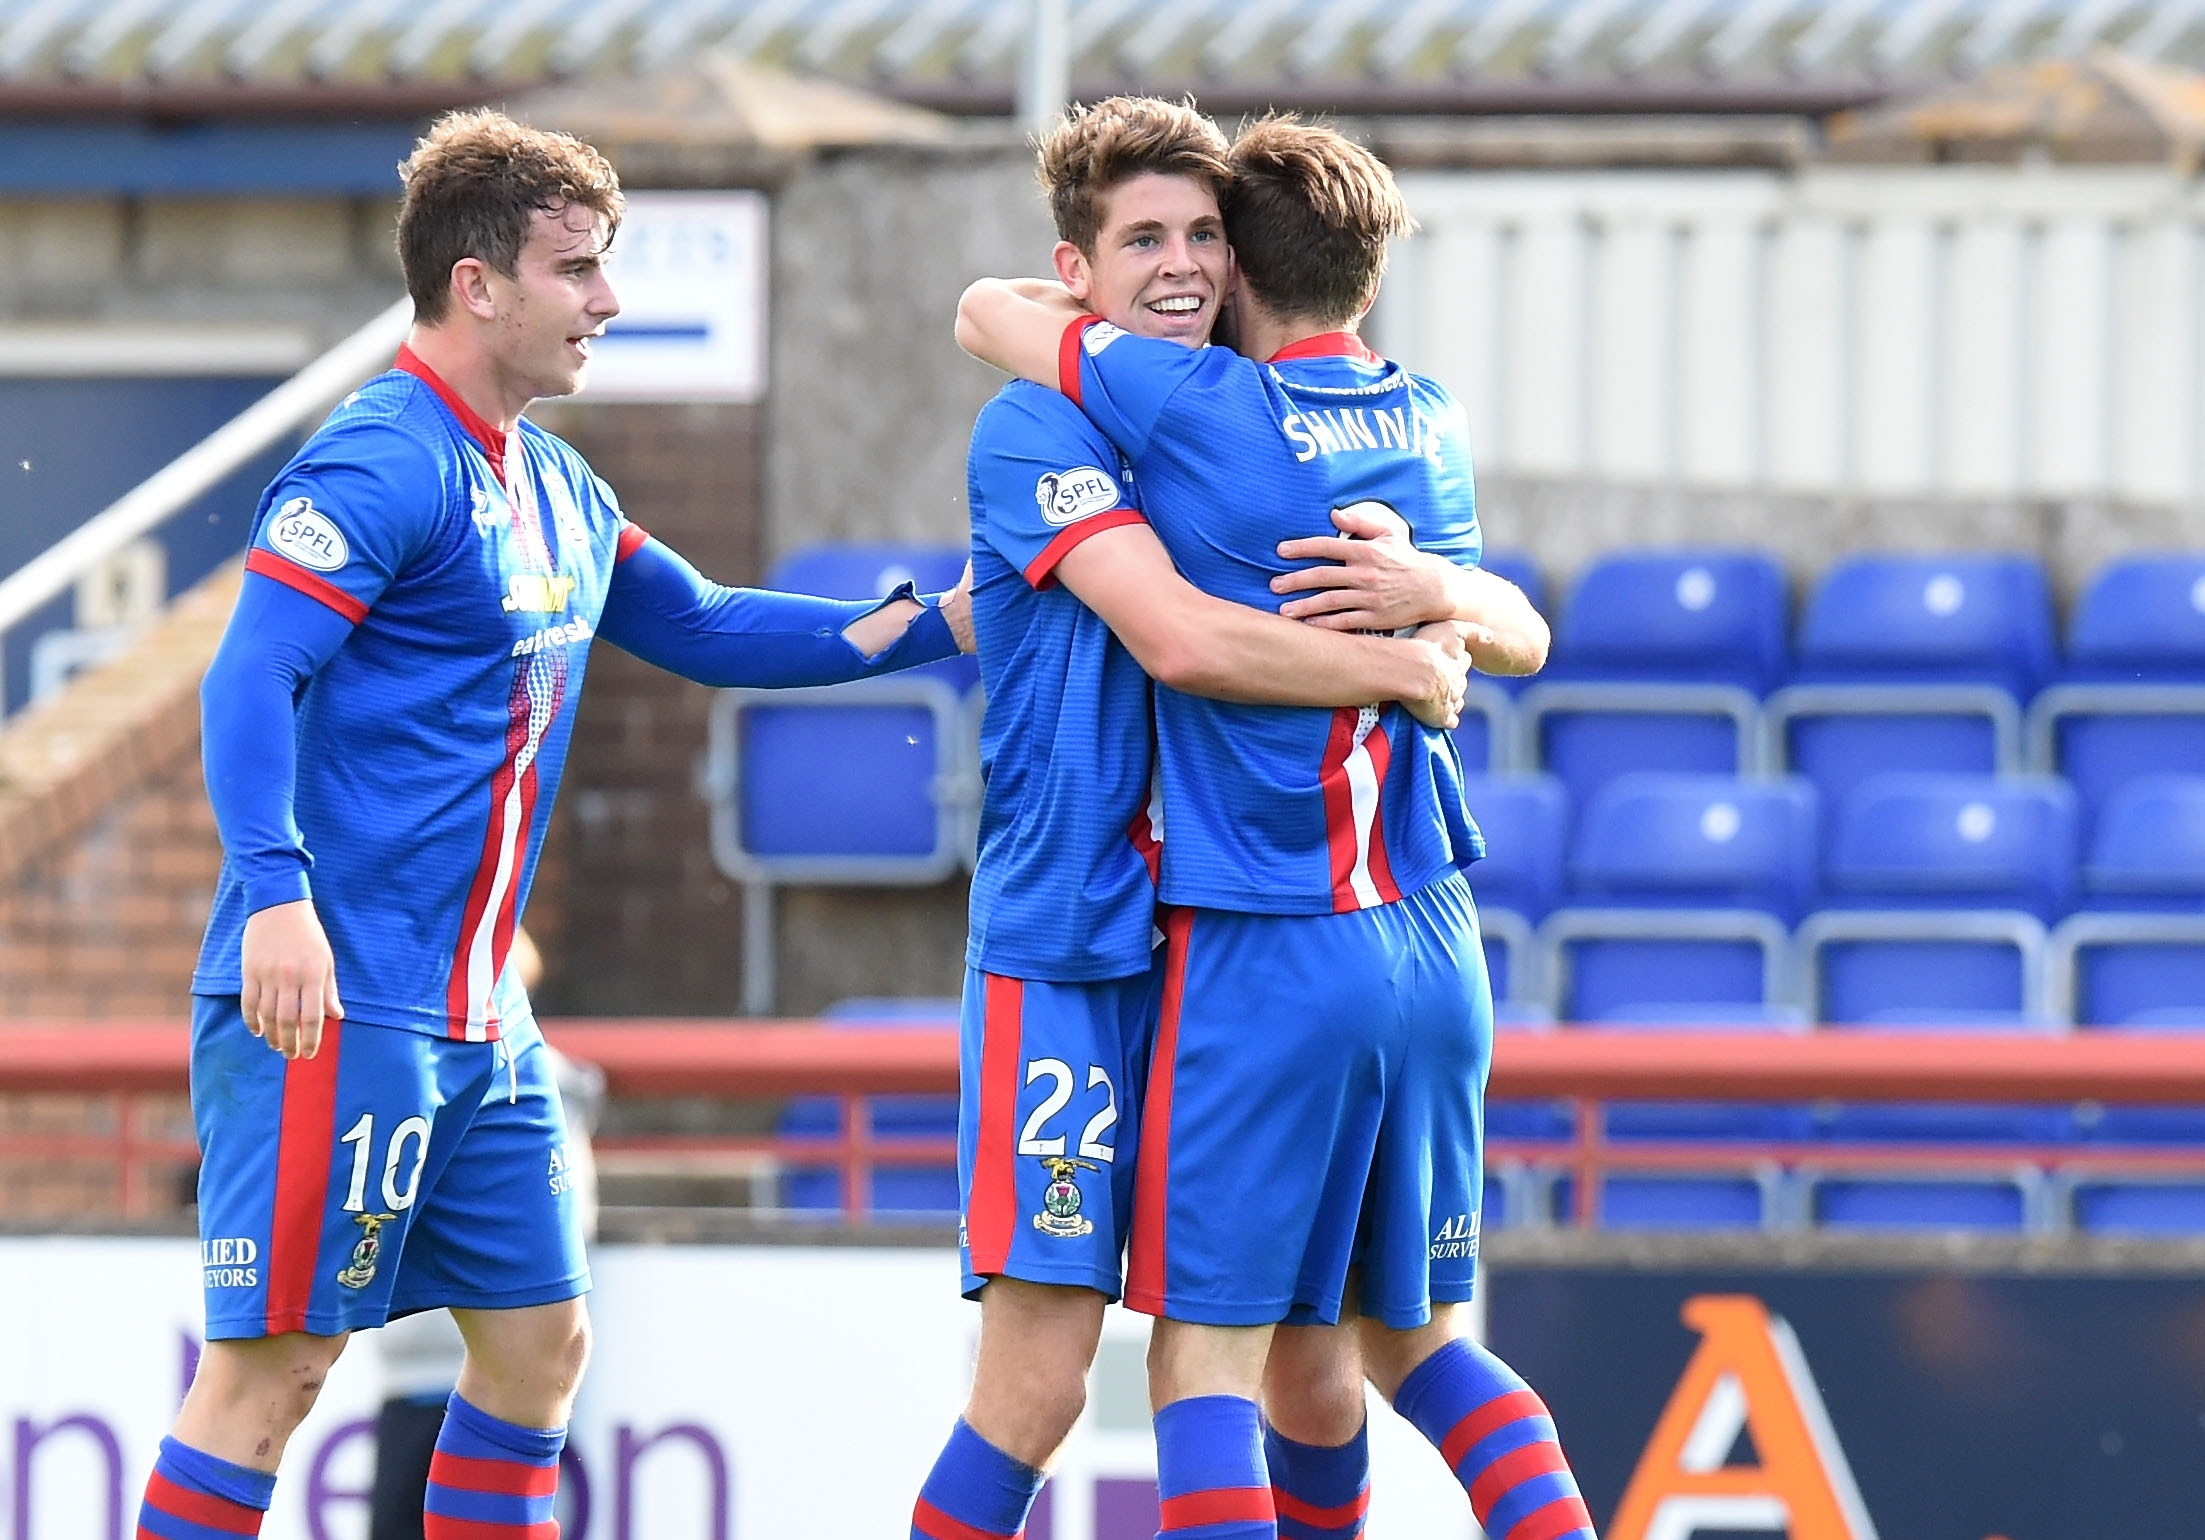 Caley Thistle celebrate Ryan Christie's goal when the teams met in September